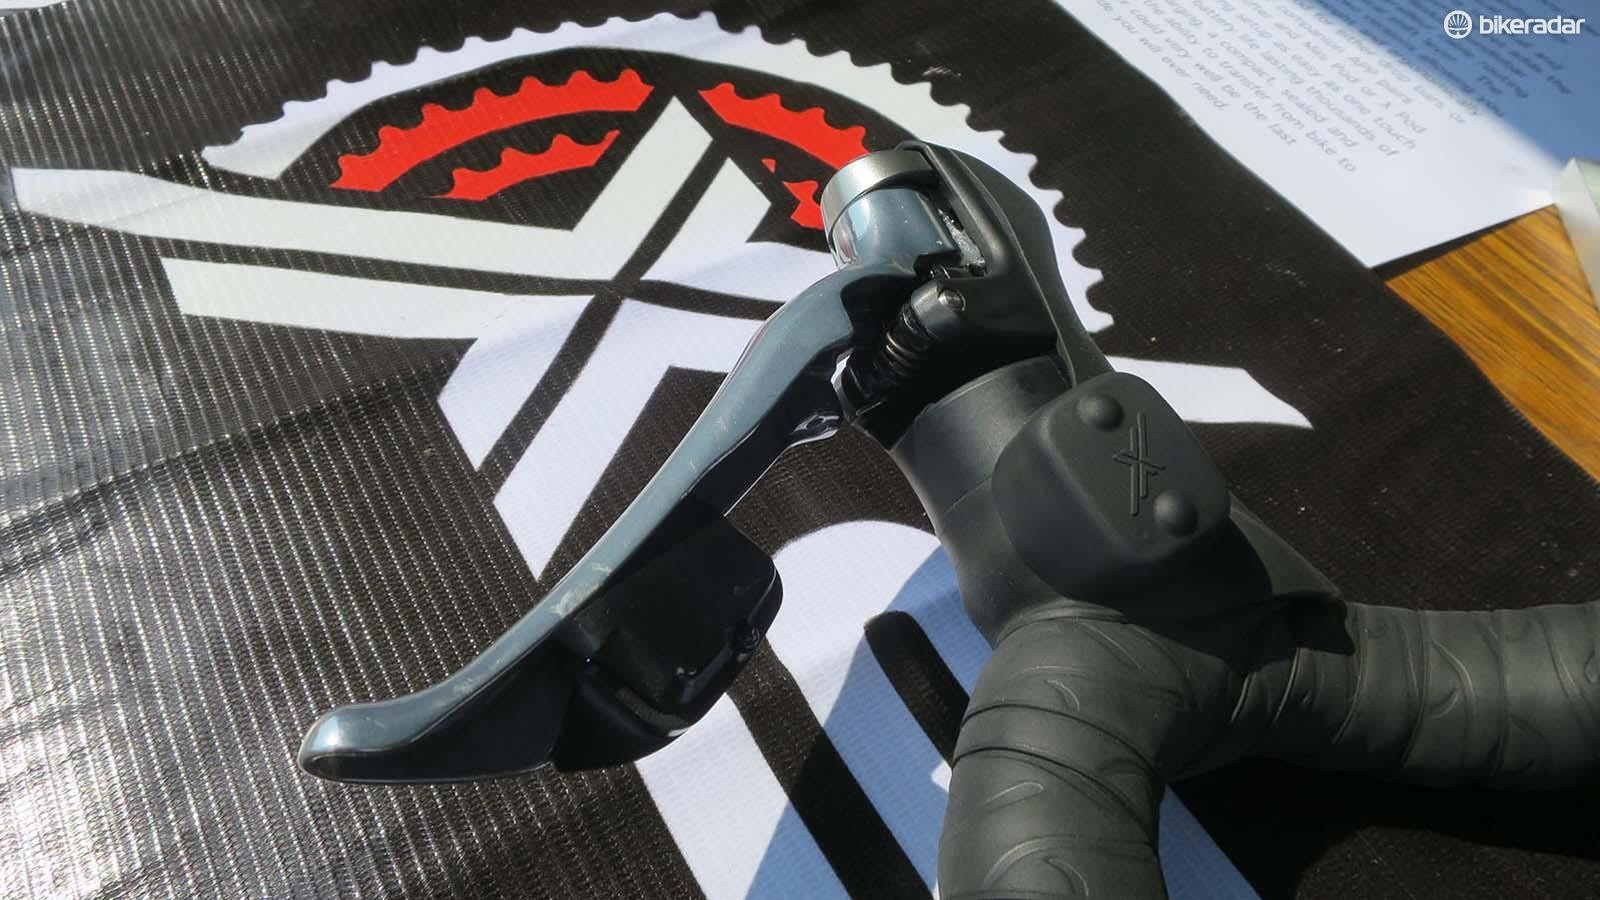 Then it's a case of simply mounting the minimal micro-pod shifter next to your standard shifter